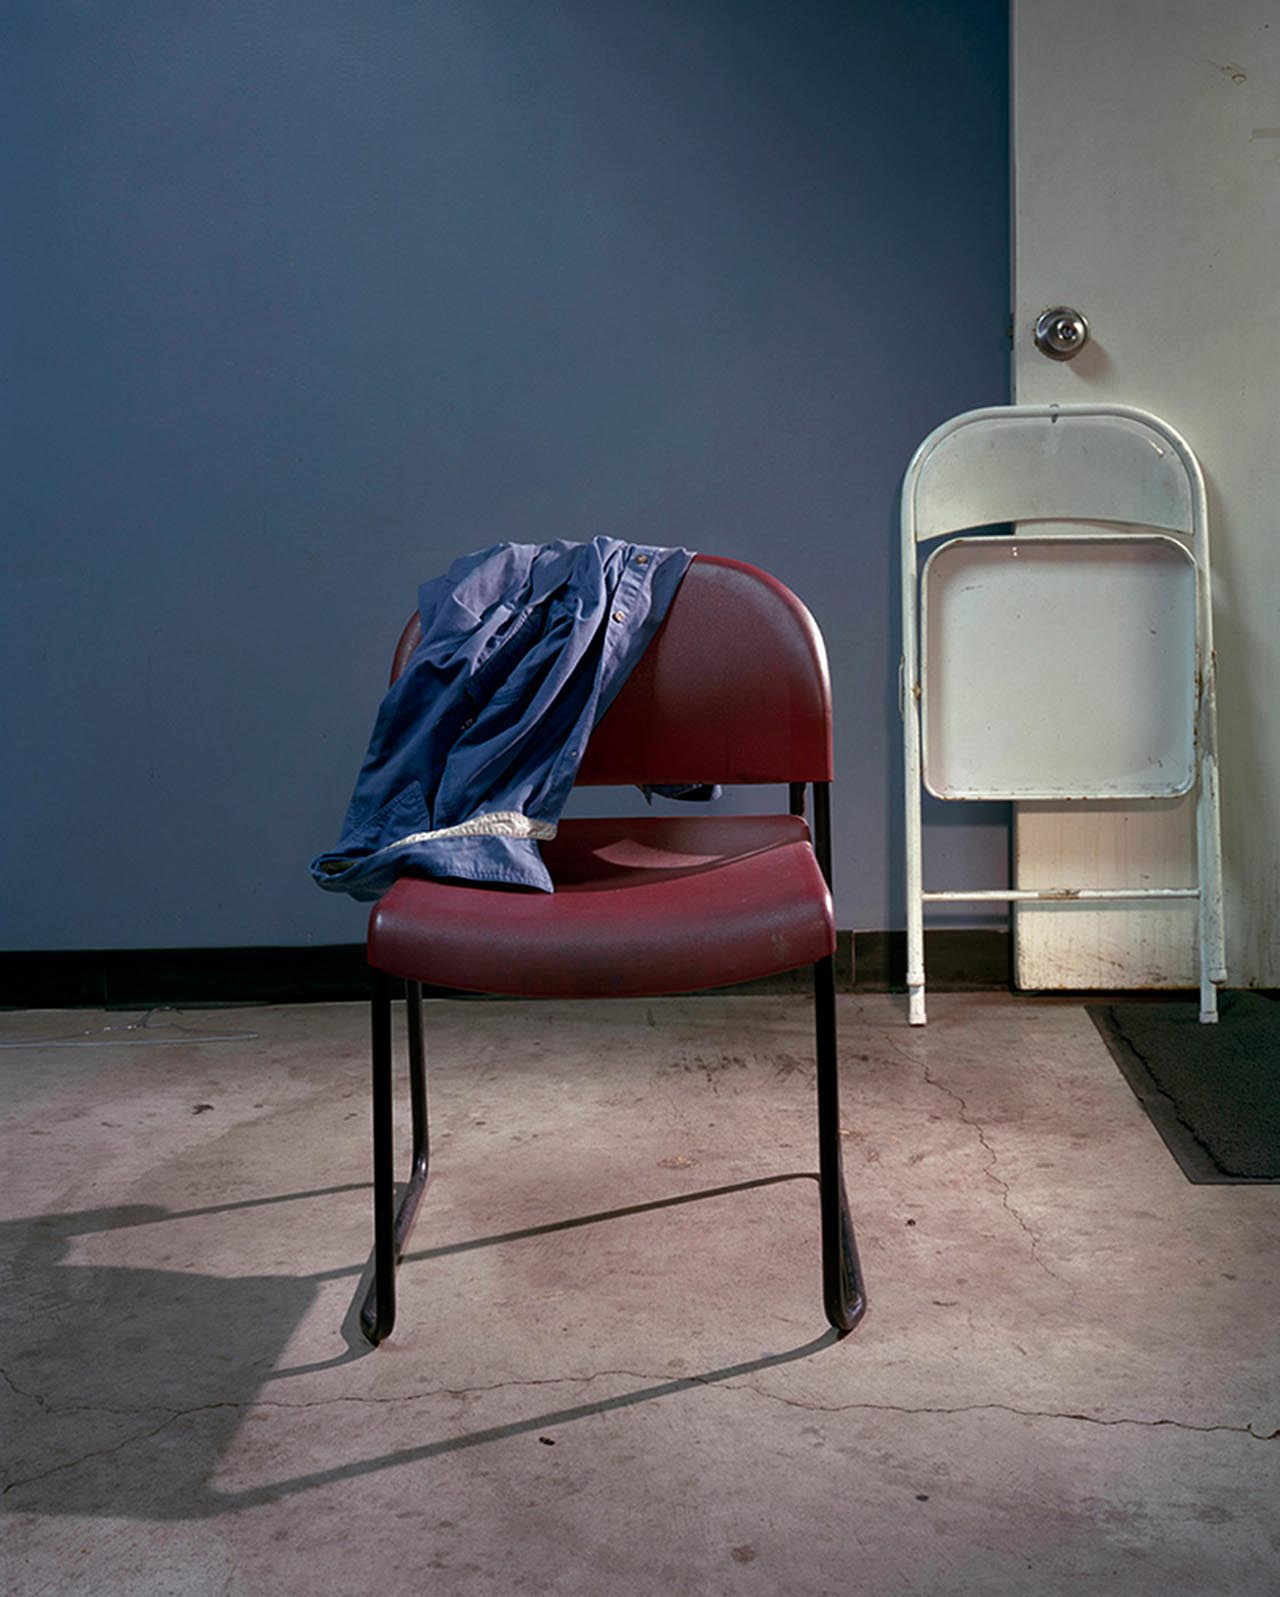 "Juan Giraldo, Chair, Chicago IL 2013, Archival Pigment Print, 24""x 30"""